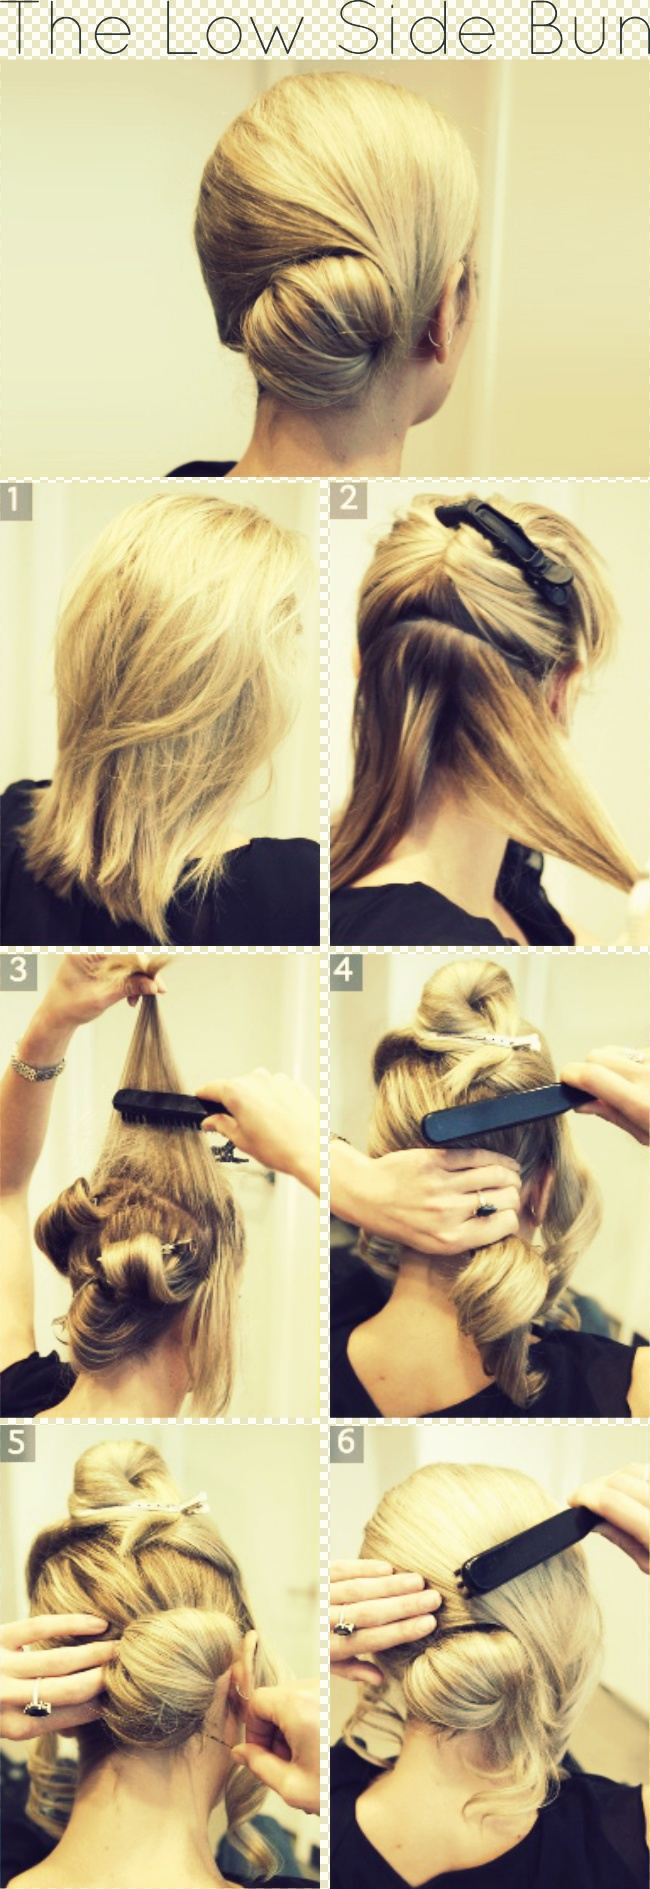 The Low Side Bun Step by Step Tutorial - I love that this is something you don't have to actually have long hair for